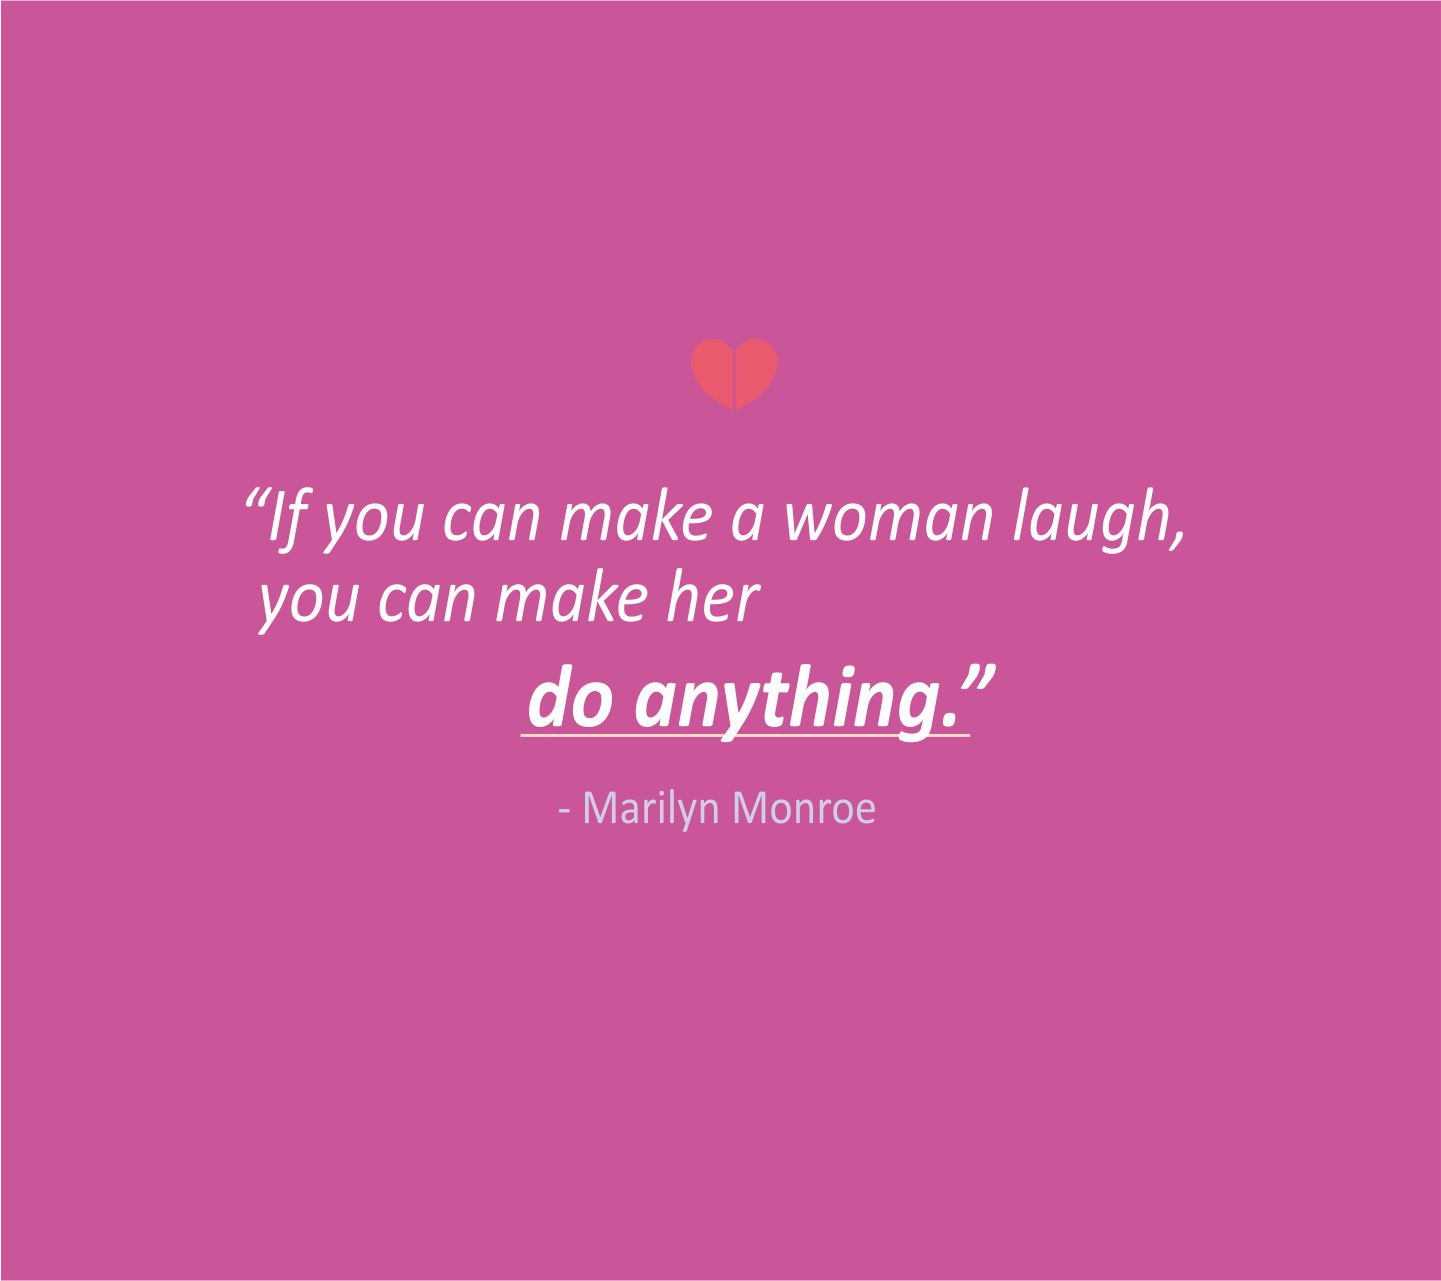 I Love You Funny Quotes For Her Quotesgram: Her Laugh Quotes. QuotesGram